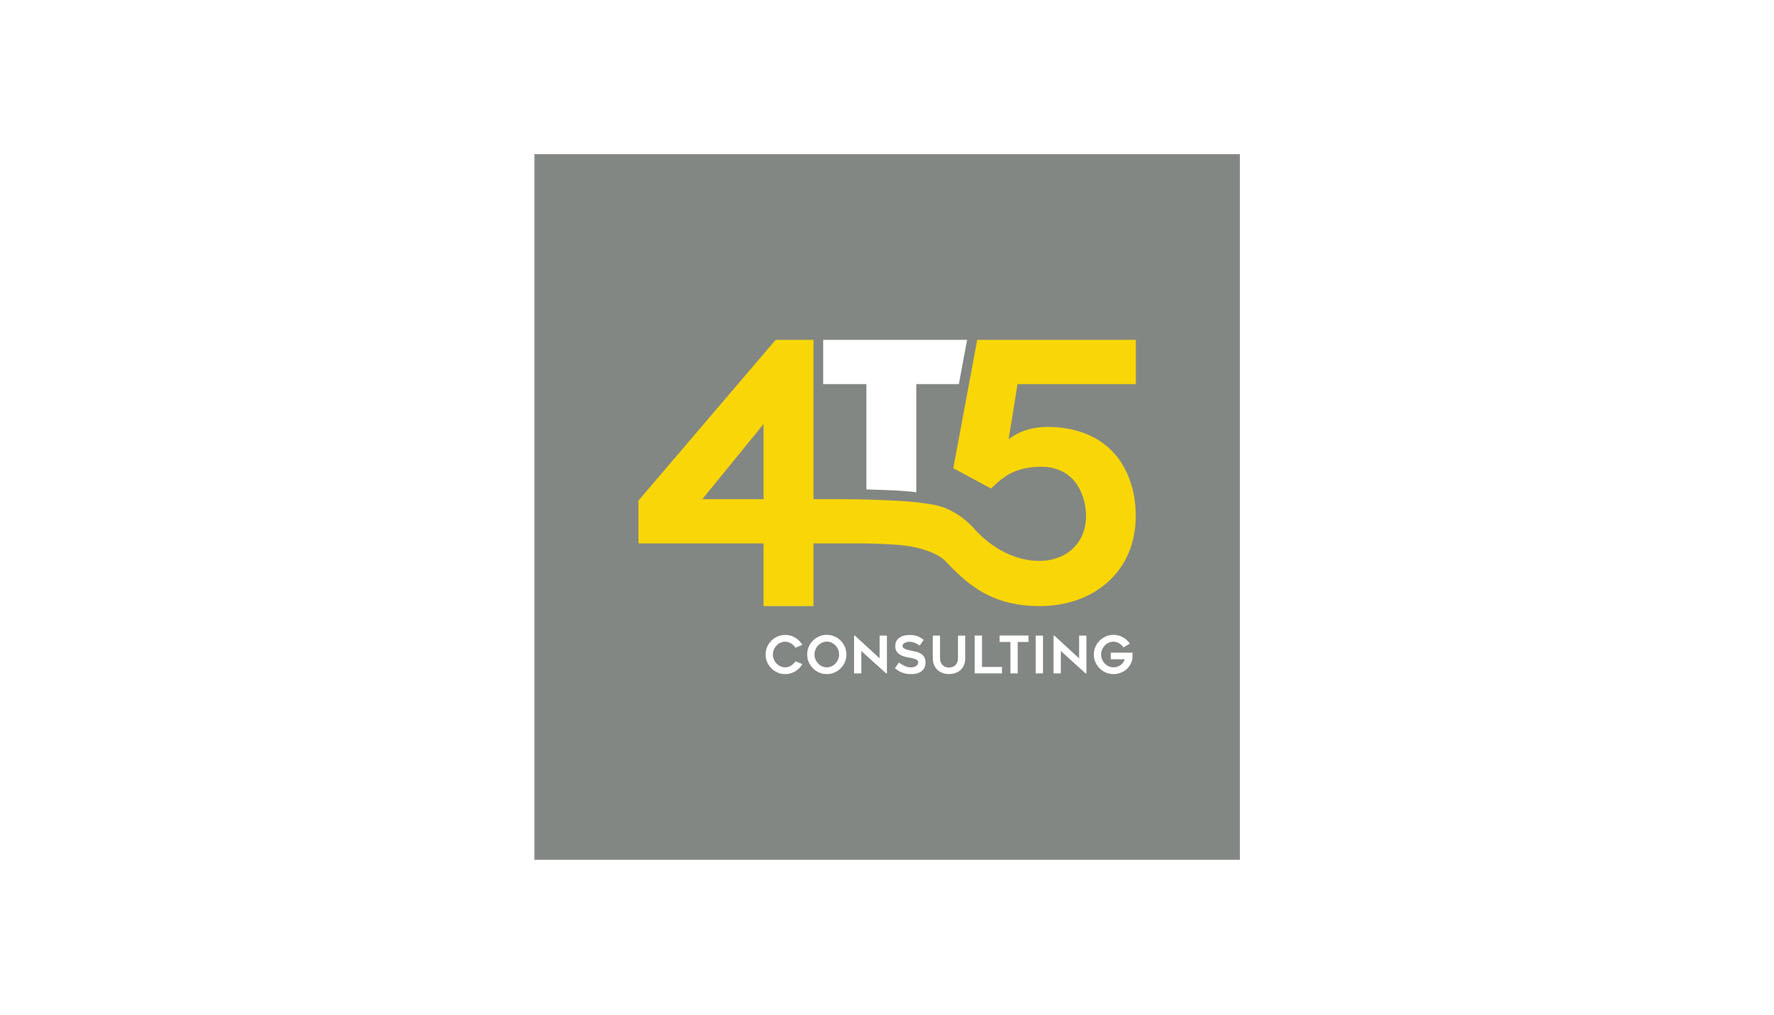 4T5 Consulting